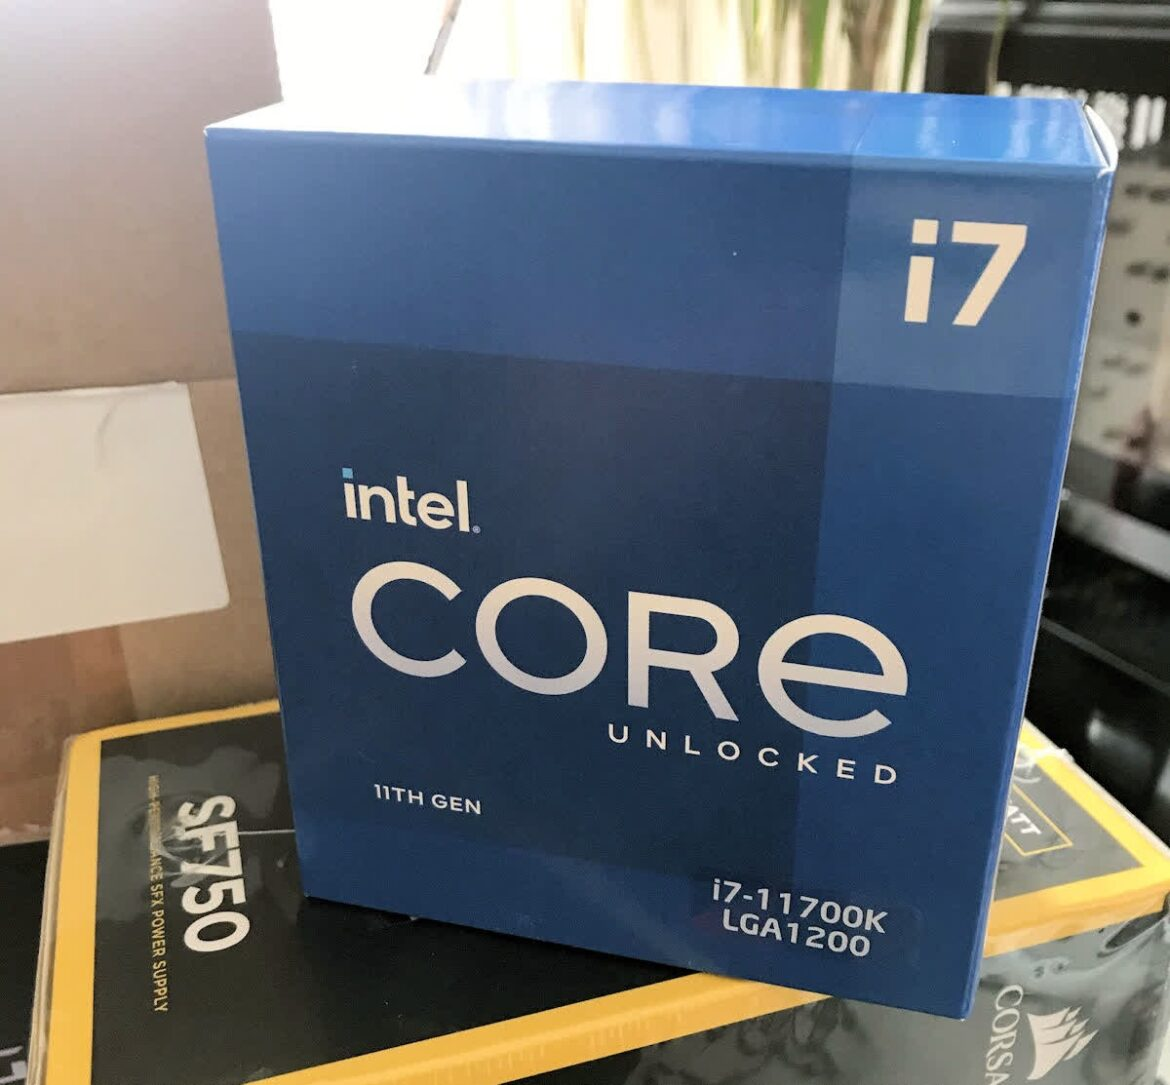 Intel's unreleased i7-11700K is being sold and shipped in Germany